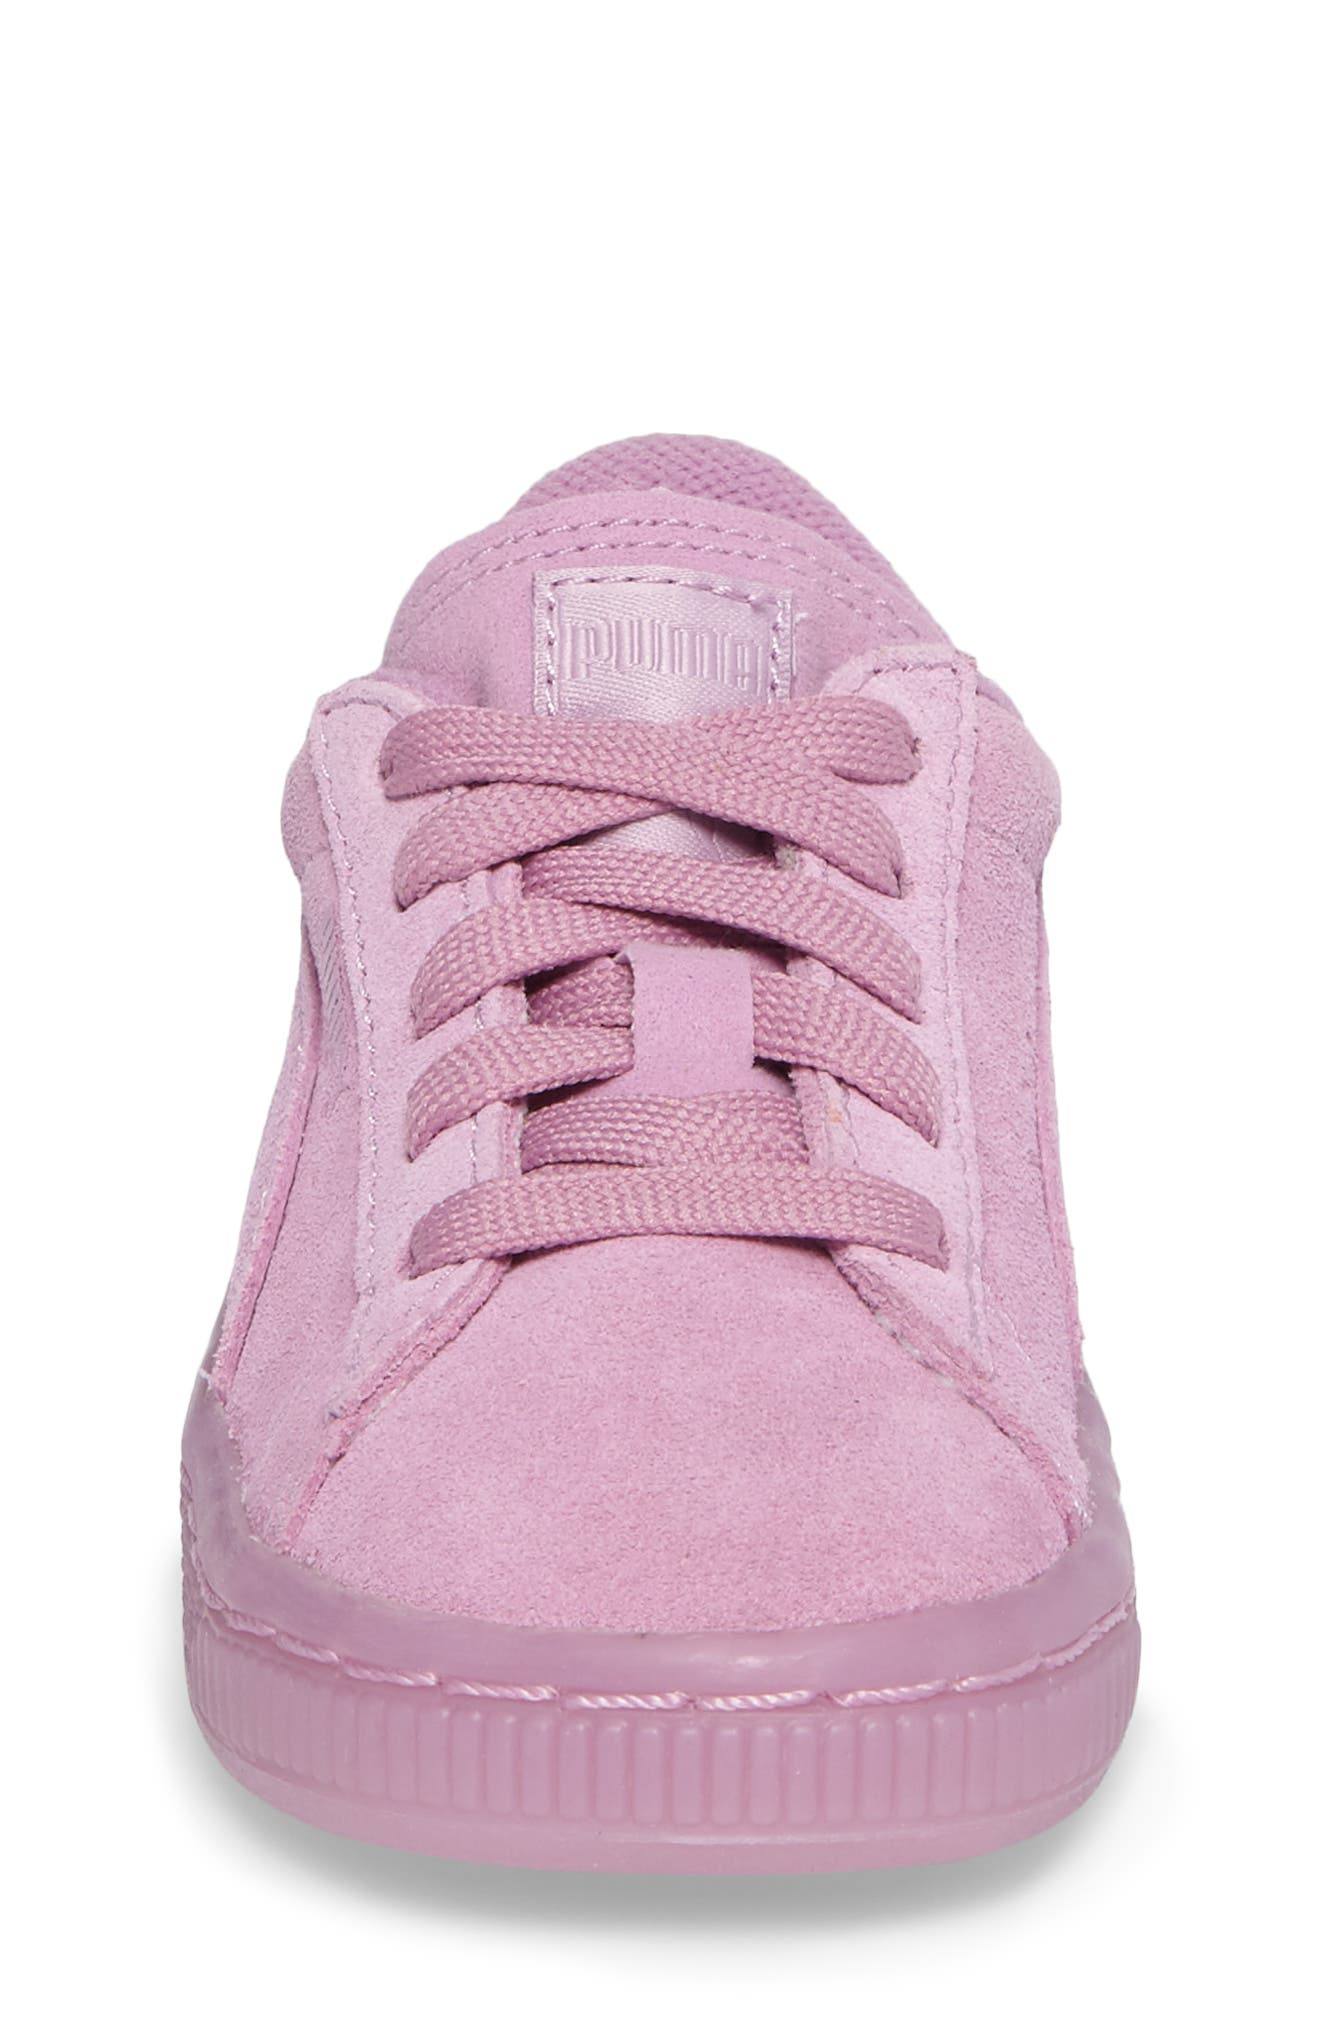 Suede Iced Sneaker,                             Alternate thumbnail 4, color,                             Smoky Grape